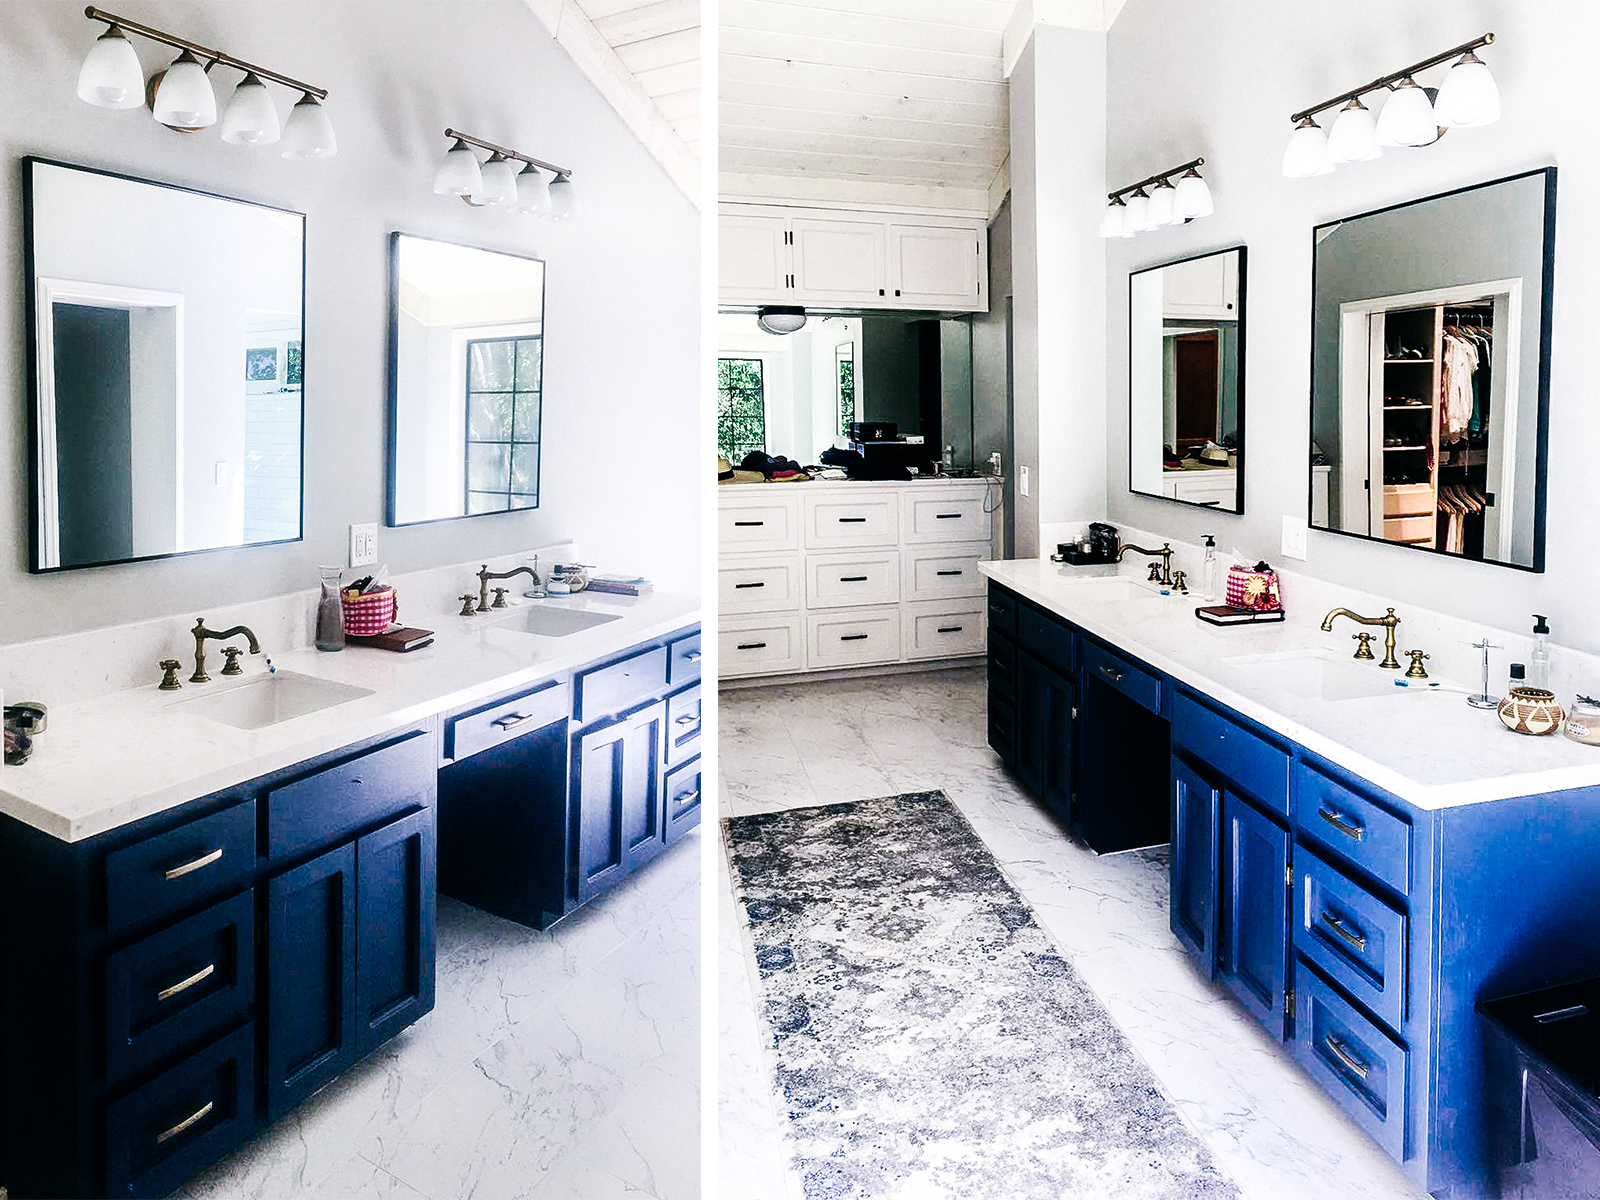 JIMENEZ  - This Master bathroom remodel includes a custom deep royal blue his & hers sink cabinet along with high quality marble look porcelain tile. The bronze finishes tie in the modern rustic charm that the rest of the space